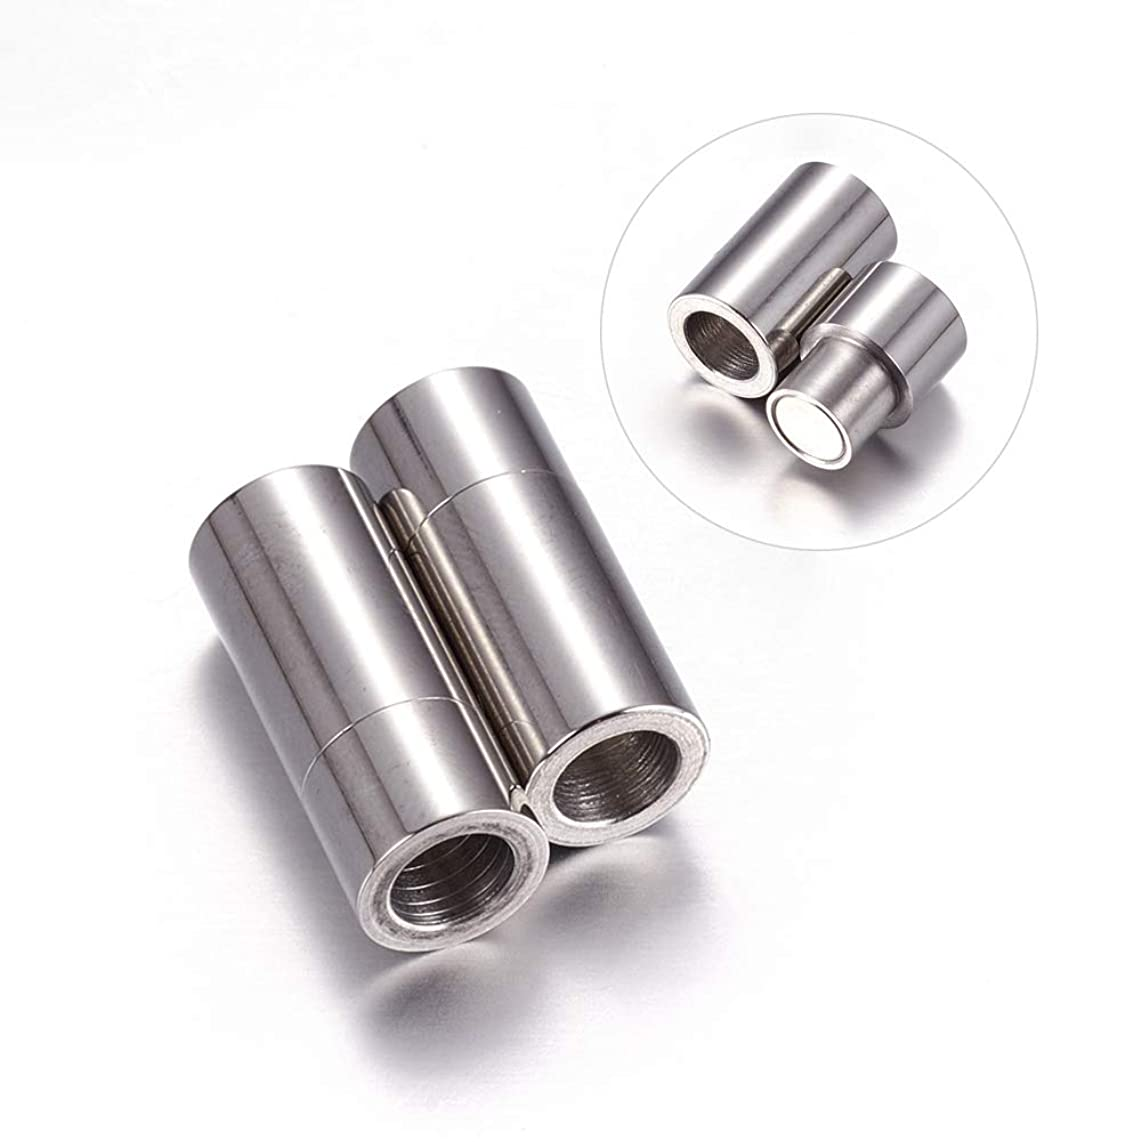 DanLingJewelry 304 Stainless Steel Magnetic Clasps Magnet Converter for Bracelet Necklace Making (Stainless Steel Color, Approx 10pcs, 7x19mm,Hole:5mm)